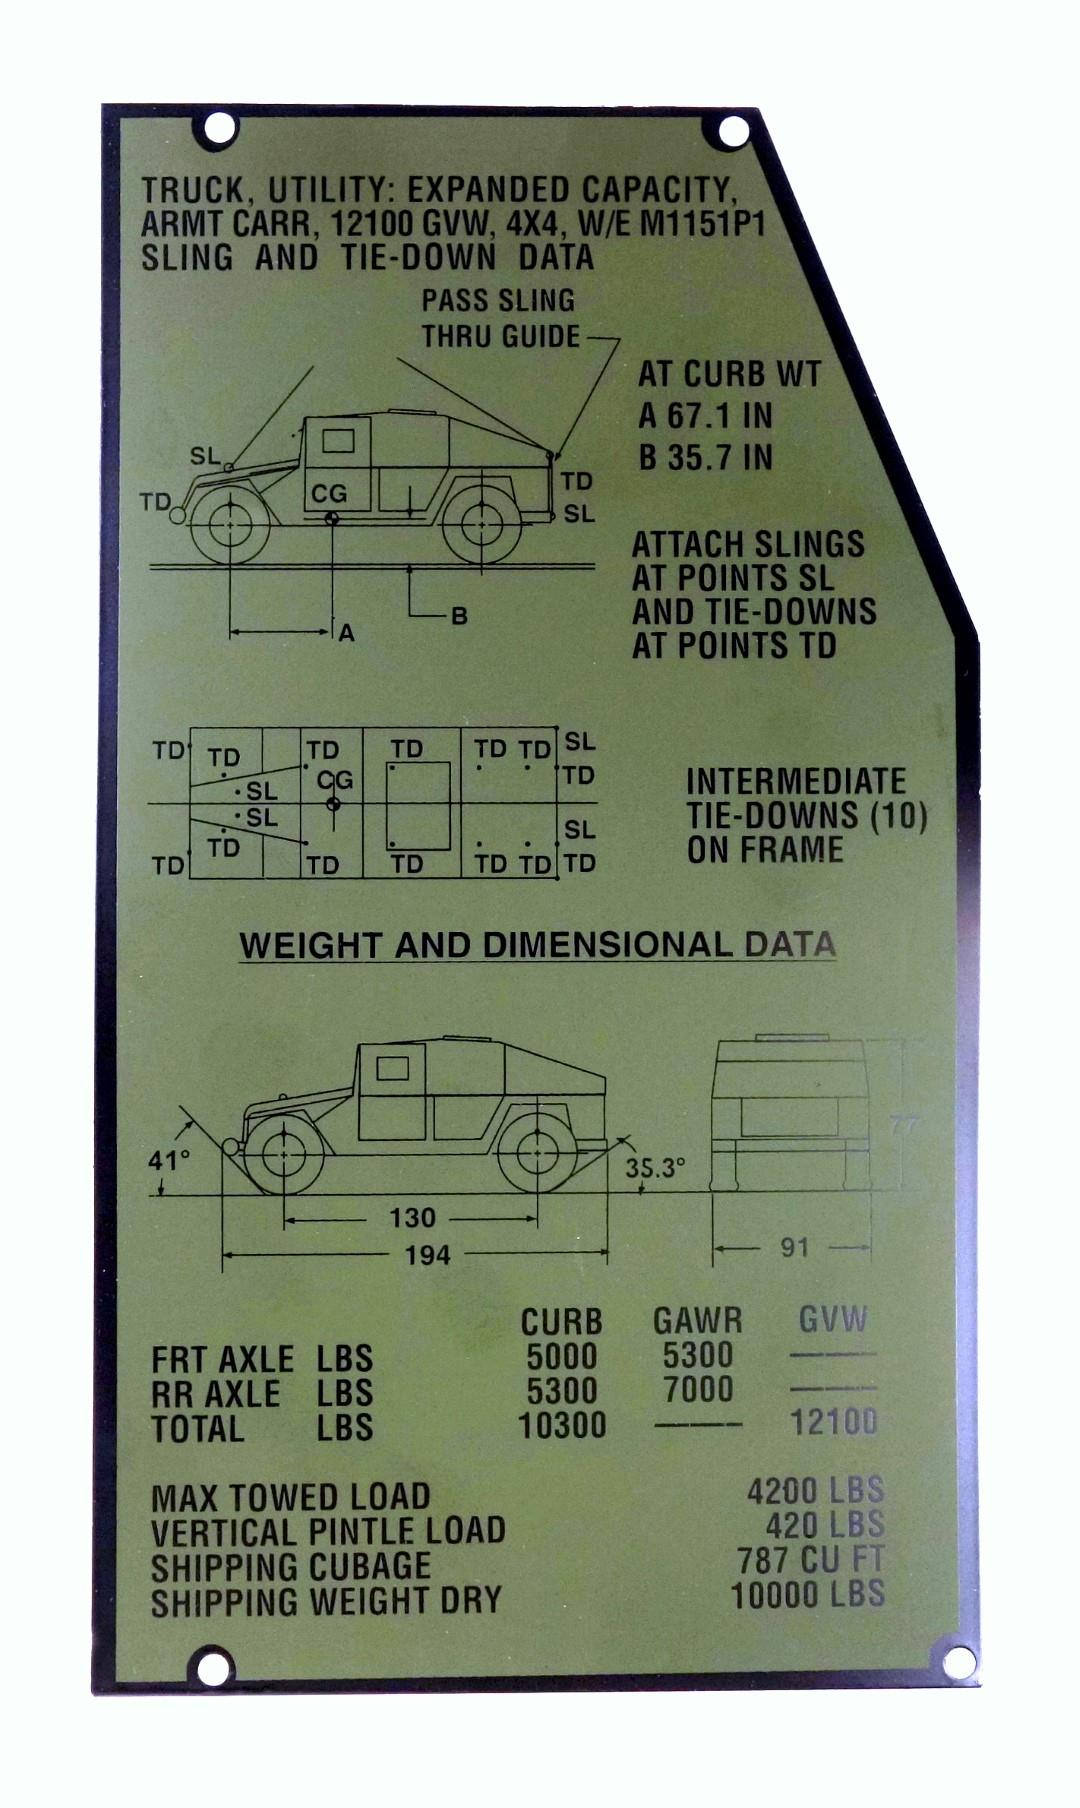 Wiring Clarion Diagram Radio Pu 9904aclarion Hmmwv Schematic Cropped 9905 01 555 2895 Data Tag Instruction Plate 3 M1123